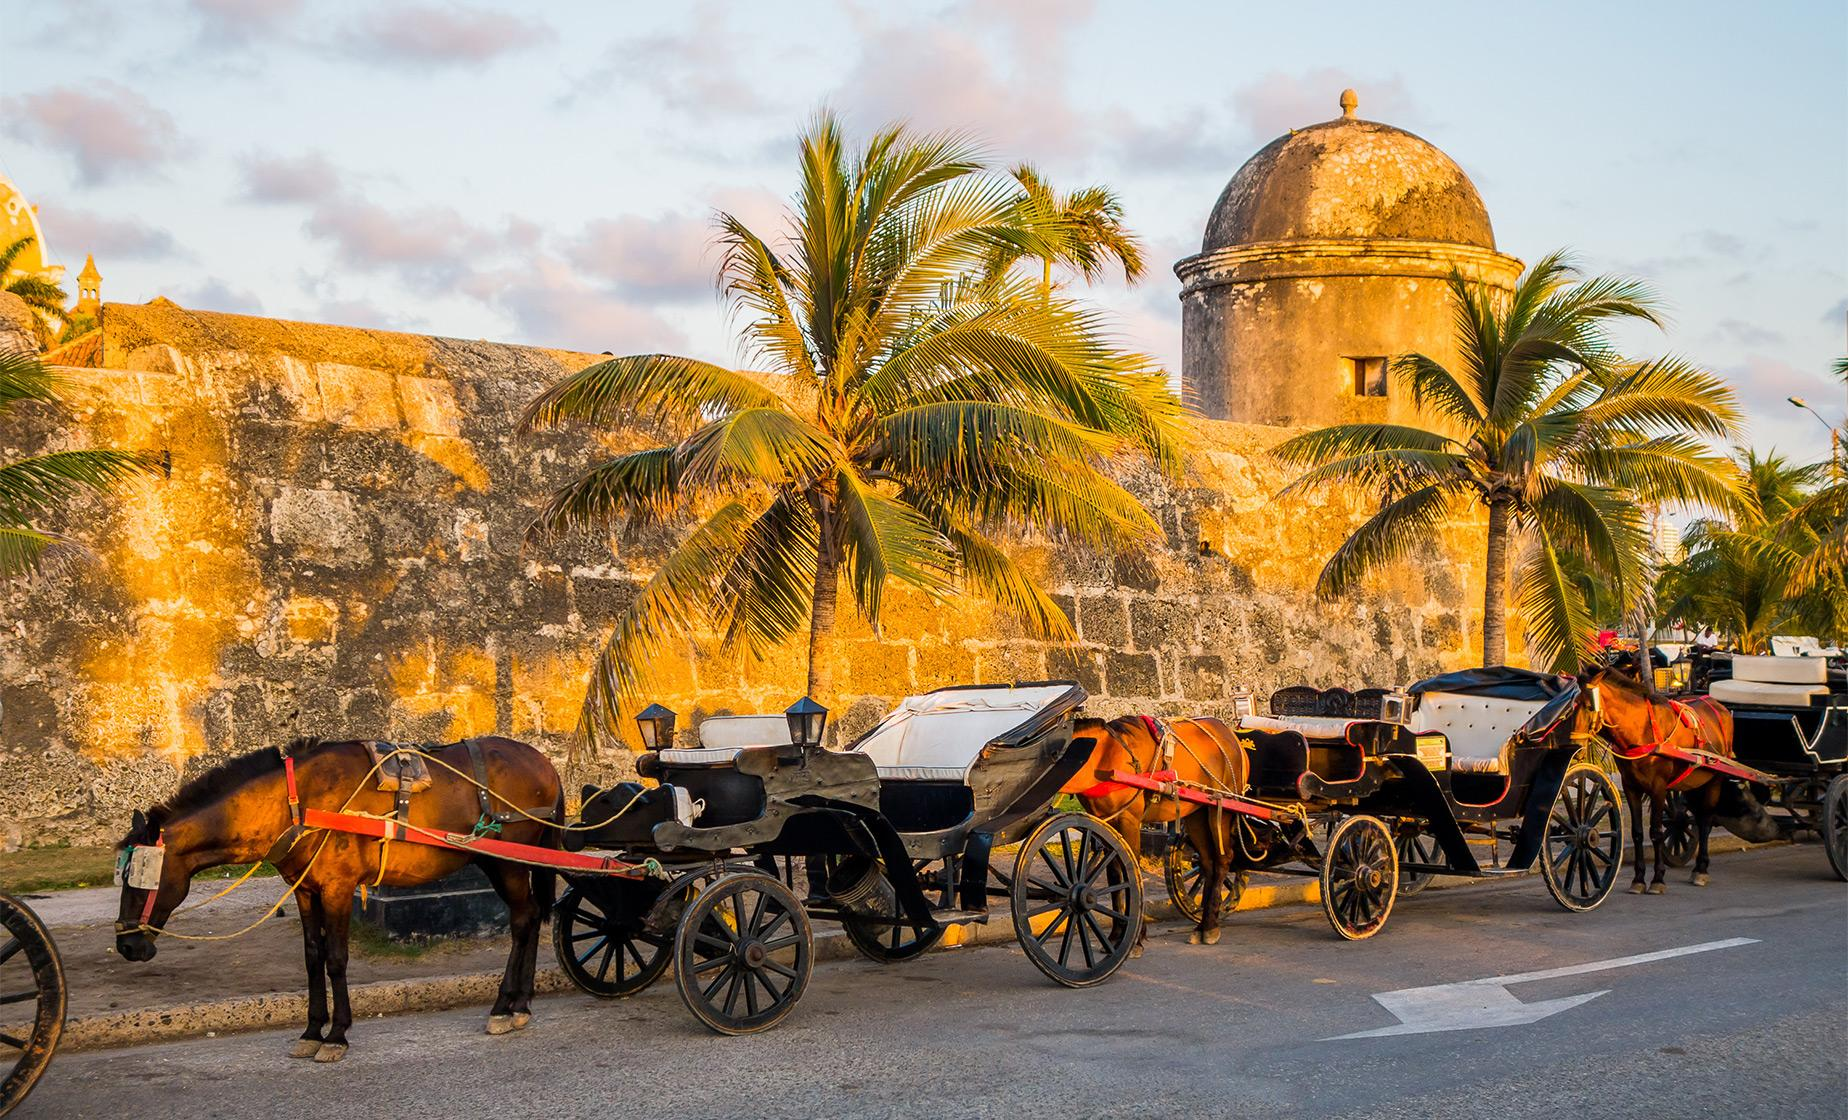 Horse Drawn Carriage Tour in Cartagena (Las Bovedas, the Old City, the Vaults)